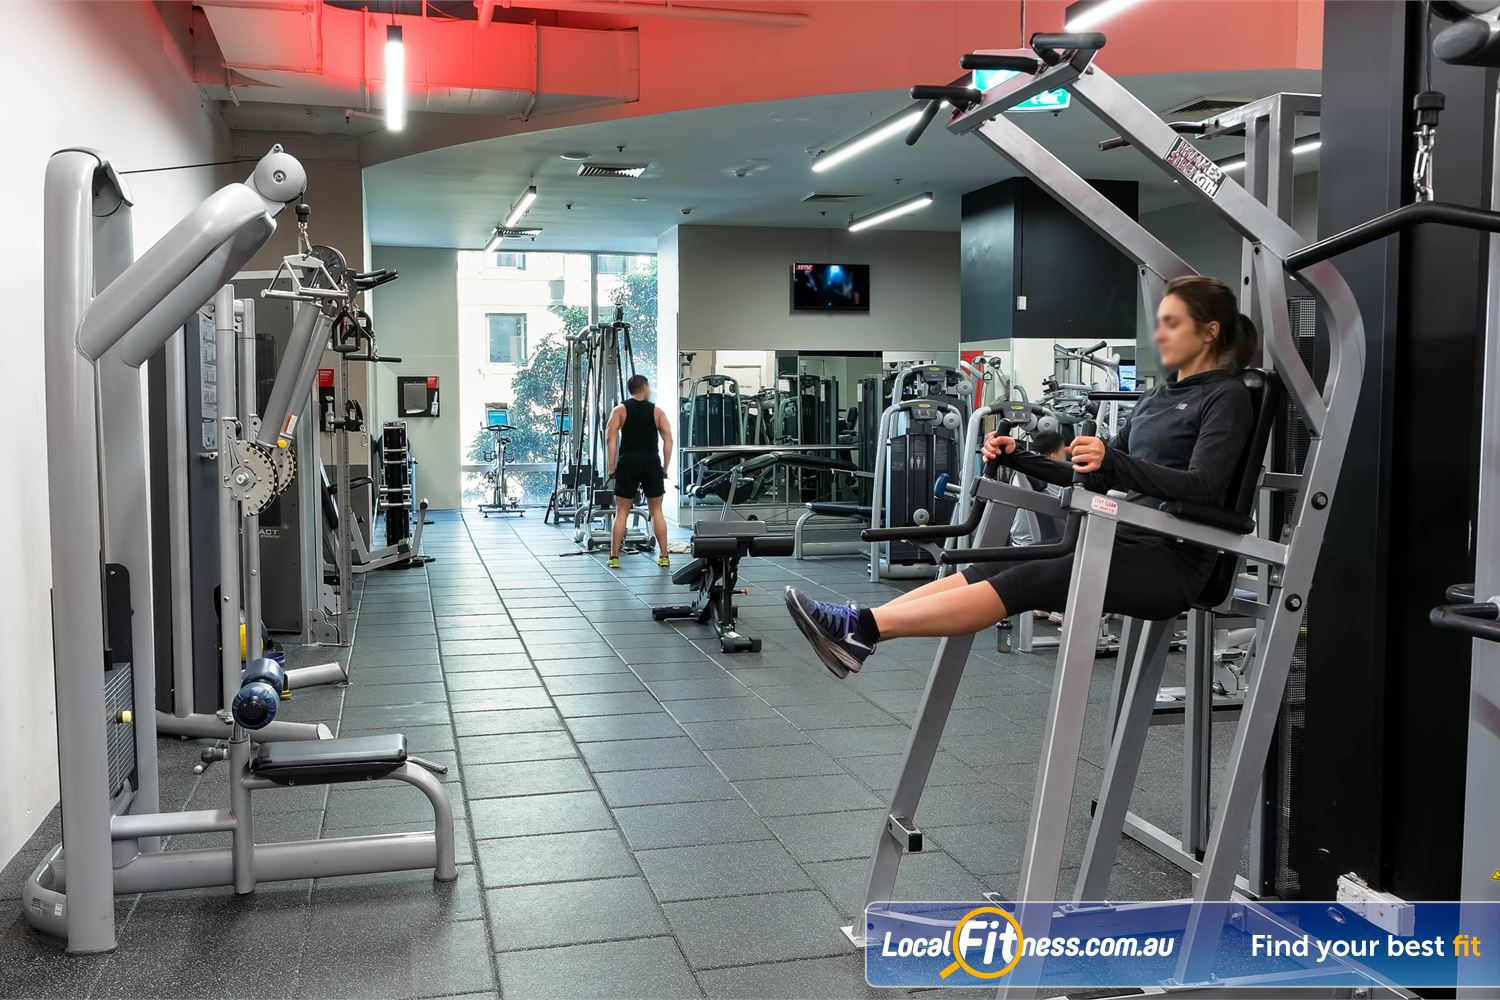 Fitness First Platinum Park St Near Alexandria Mc Our Sydney gym includes state of the art Life Fitness pin-loading equipment.